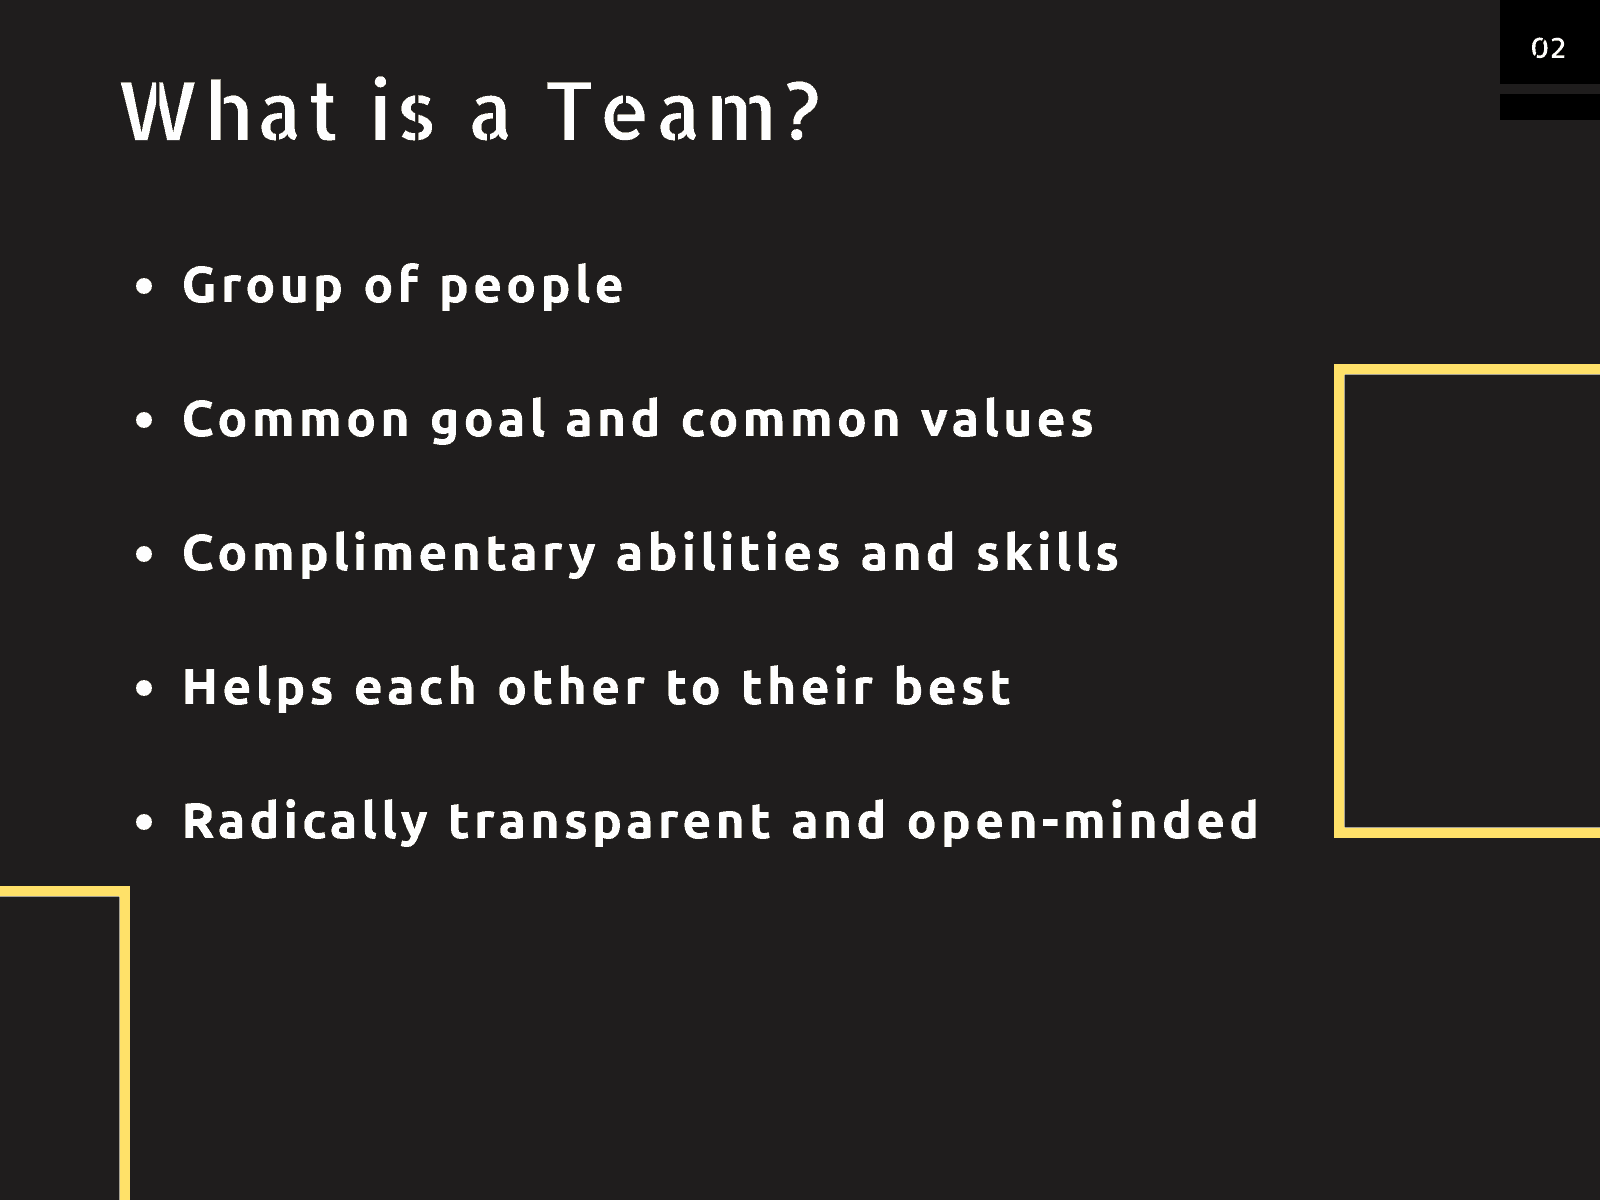 what_is_a_team-1-9253122